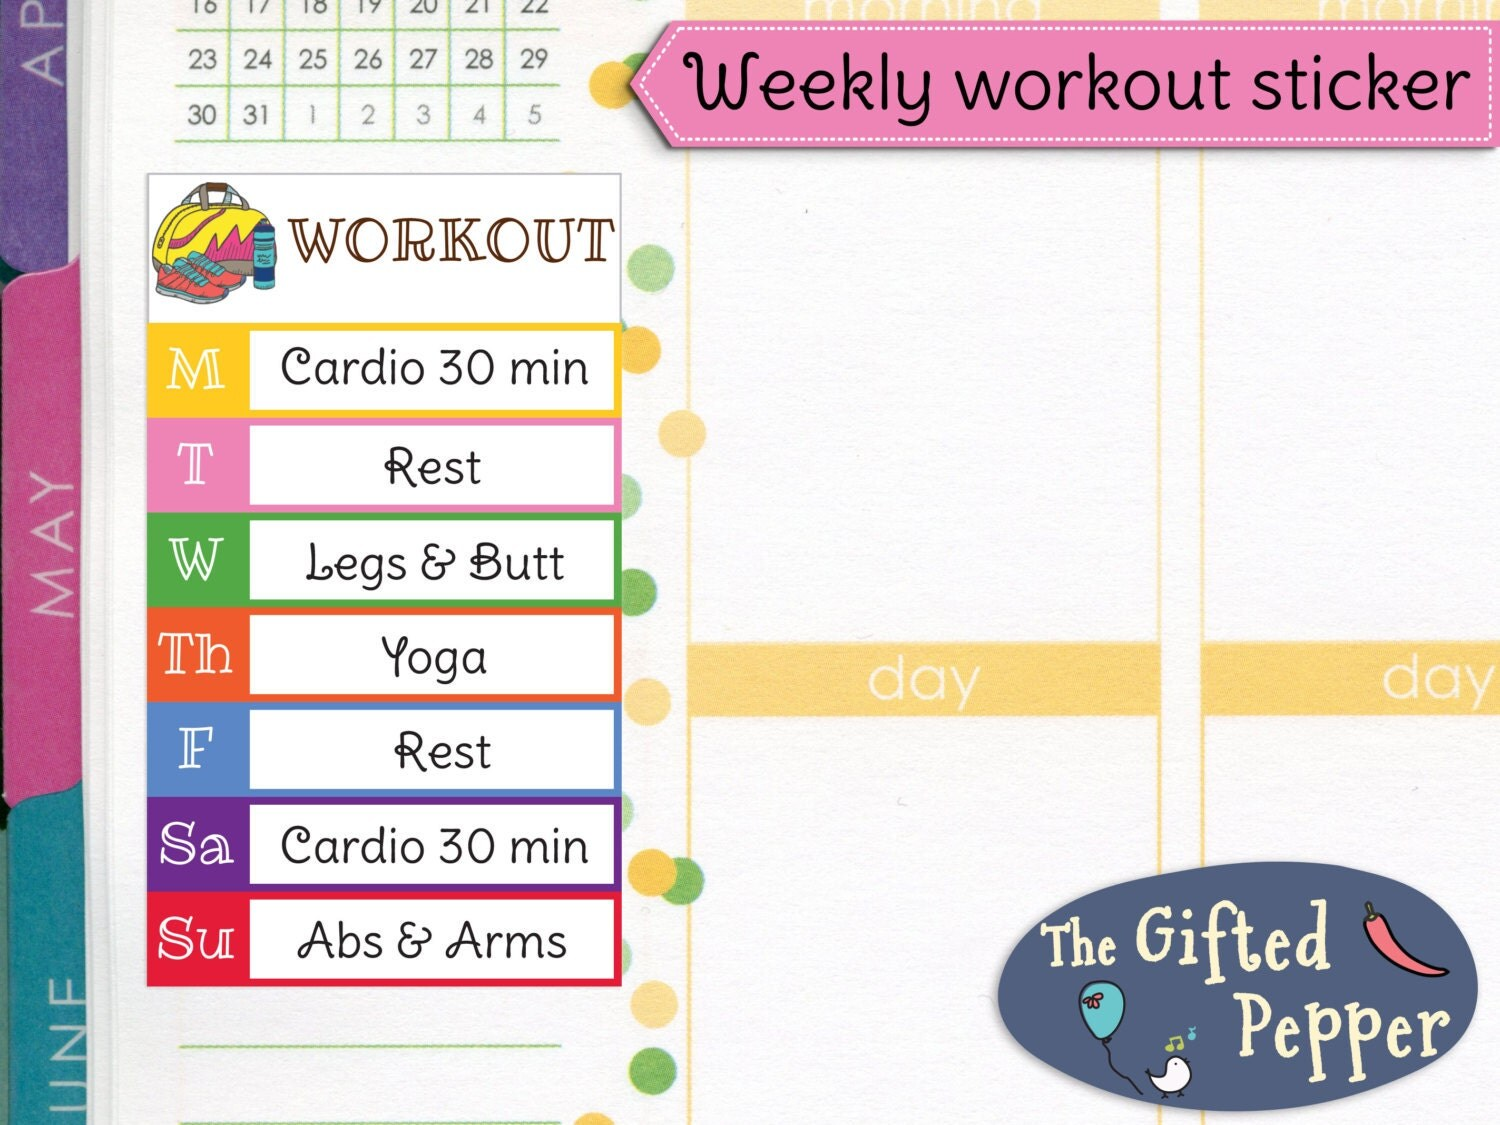 workout log printed weekly workout plan stickers exercise log fitness weight loss jogging gym tracking erin condren planner stickers item 209